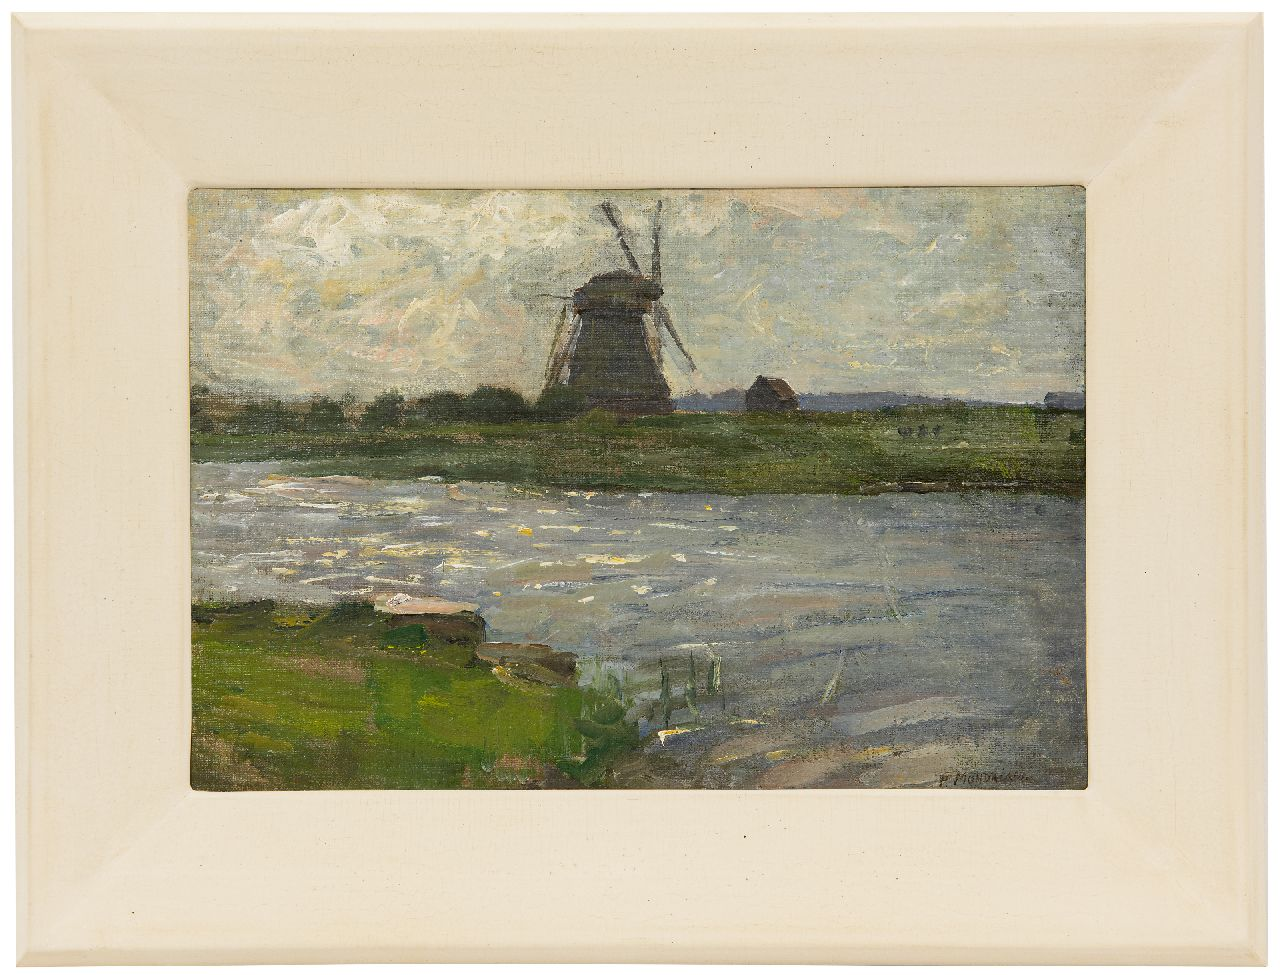 Mondriaan P.C.  | Pieter Cornelis 'Piet' Mondriaan, The Oostzijdse Mill at the Gein, viewed from the Landzicht farmhouse, oil on canvas 27.5 x 40.5 cm, signed l.r. and painted ca. 1902-1903